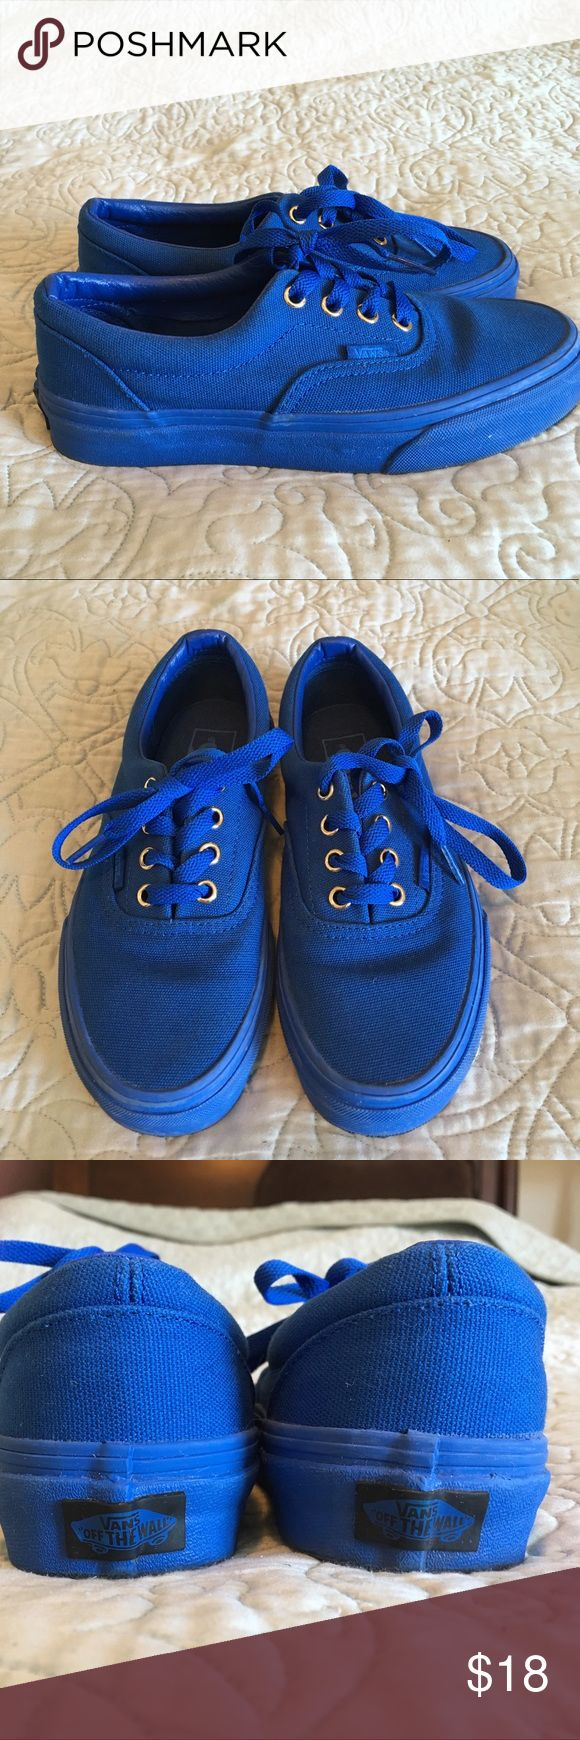 Vans Blue Boys size 4 - New Boys Vans Blue shoes size 4. My son only wore them once. Great condition and very stylish! Vans Shoes Sneakers